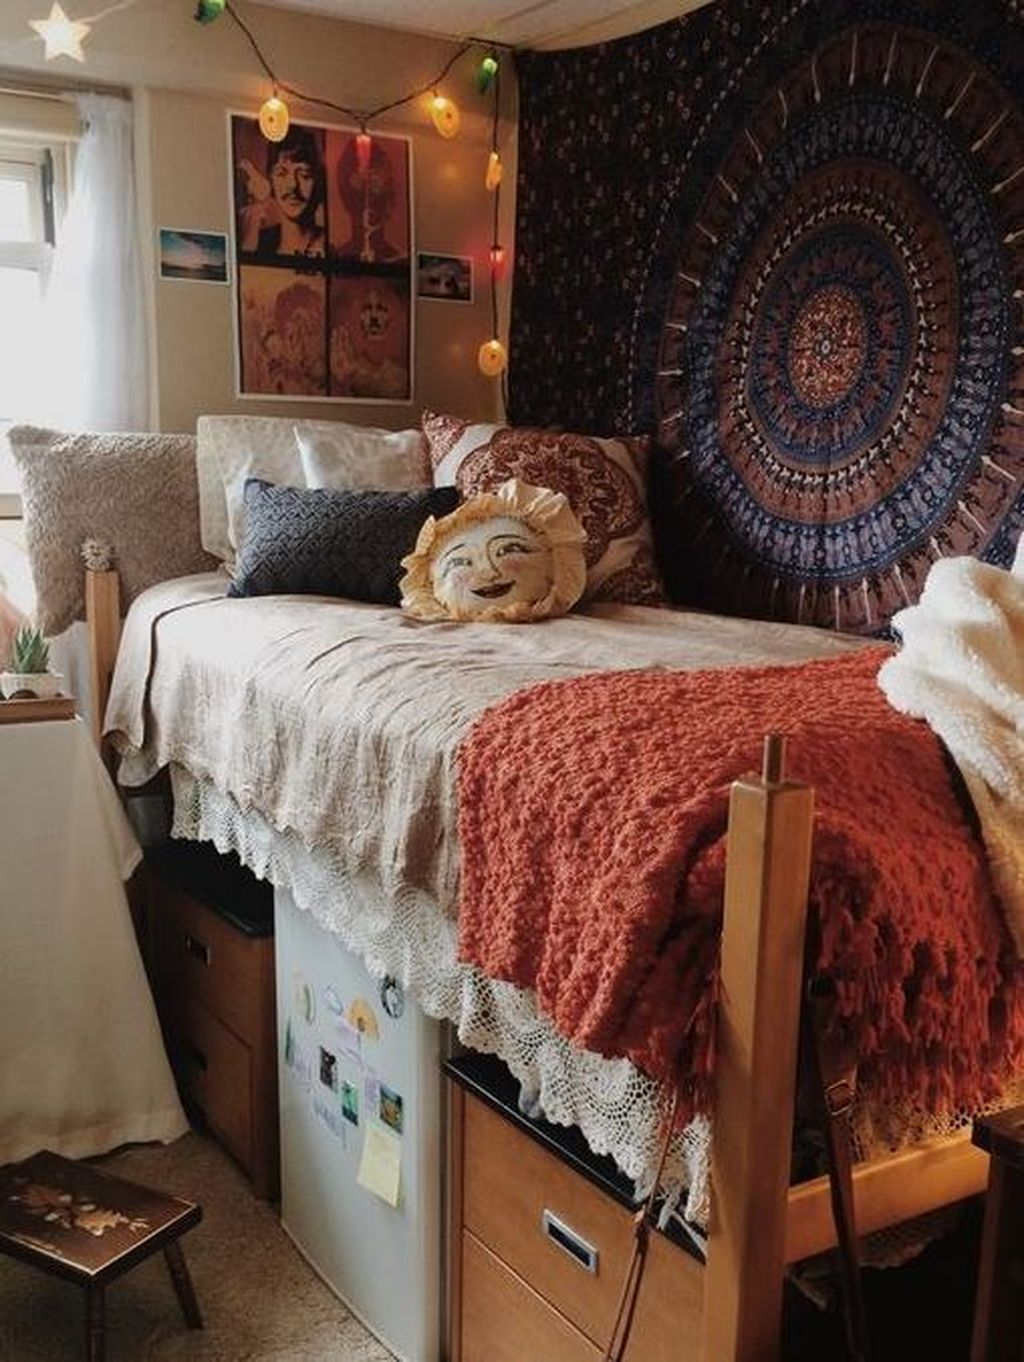 Cool 88 Cute Kids Bedroom Ideas For Girls. More At  Http://www.88homedecor.com/2017/09/10/88 Cute Kids Bedroom Ideas Girls/